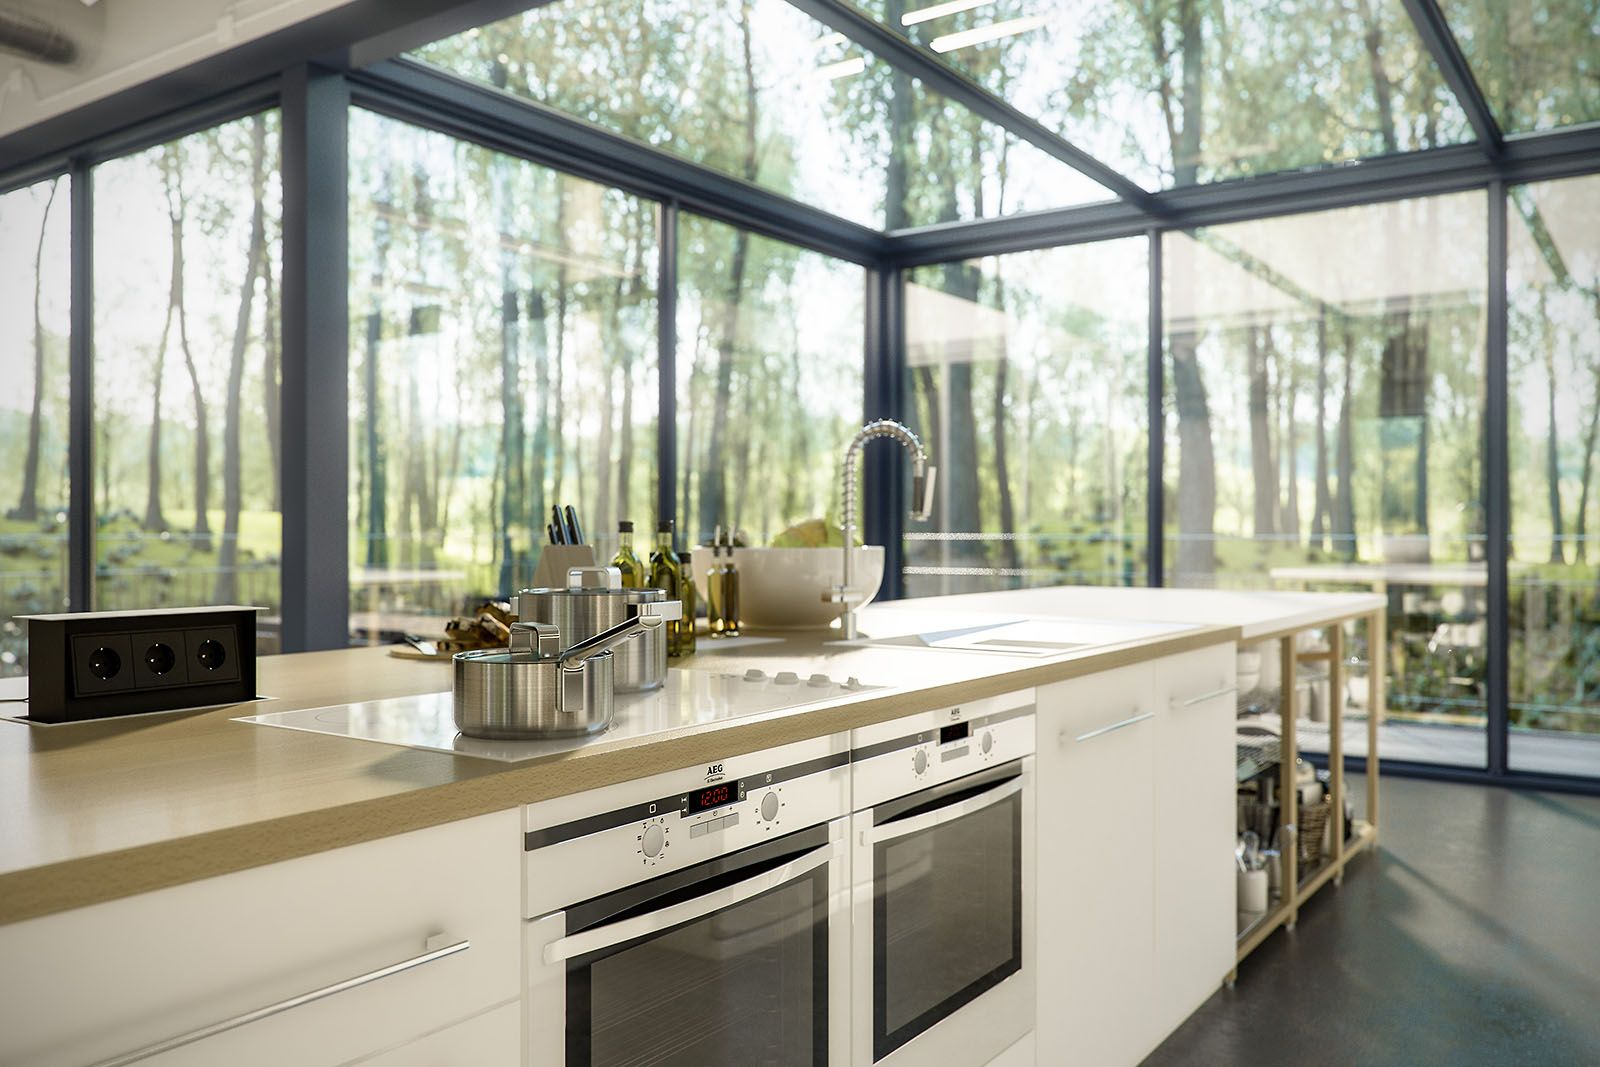 Related image | Greenhouse Home | Pinterest | Conservatories, Kitchens and Greenhouse  kitchen